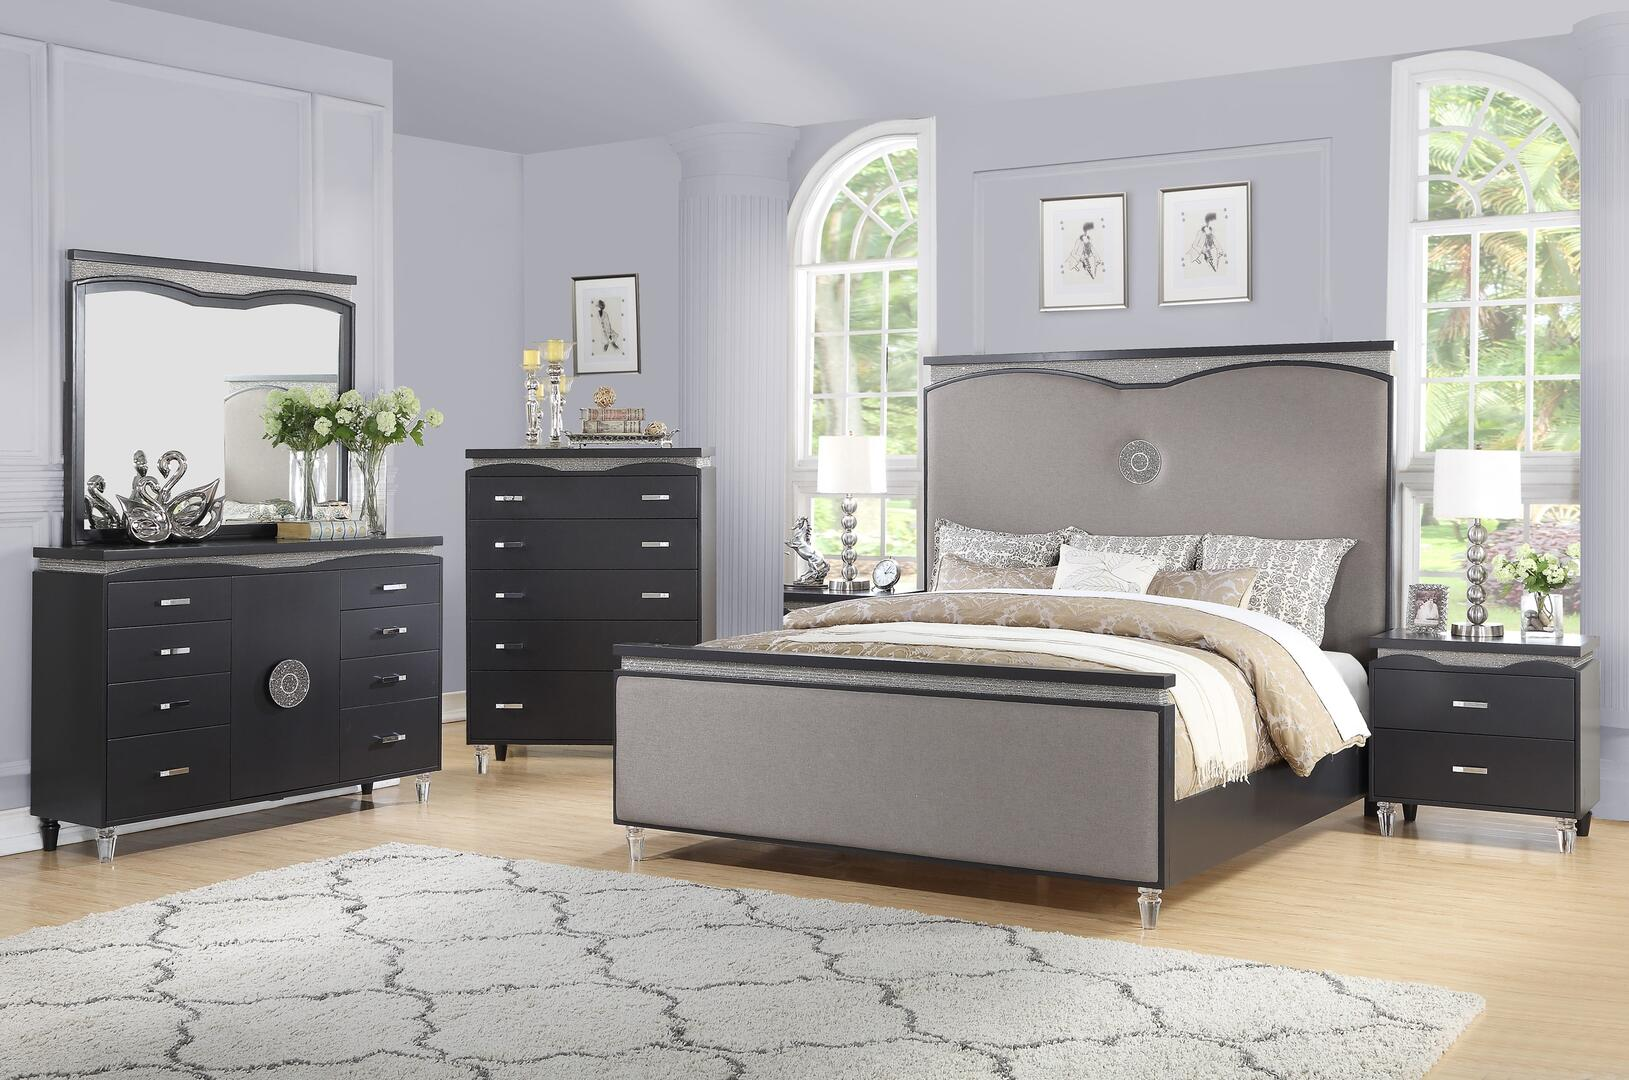 Cosmos Furniture Valencia 6 Piece King Size Bedroom Set